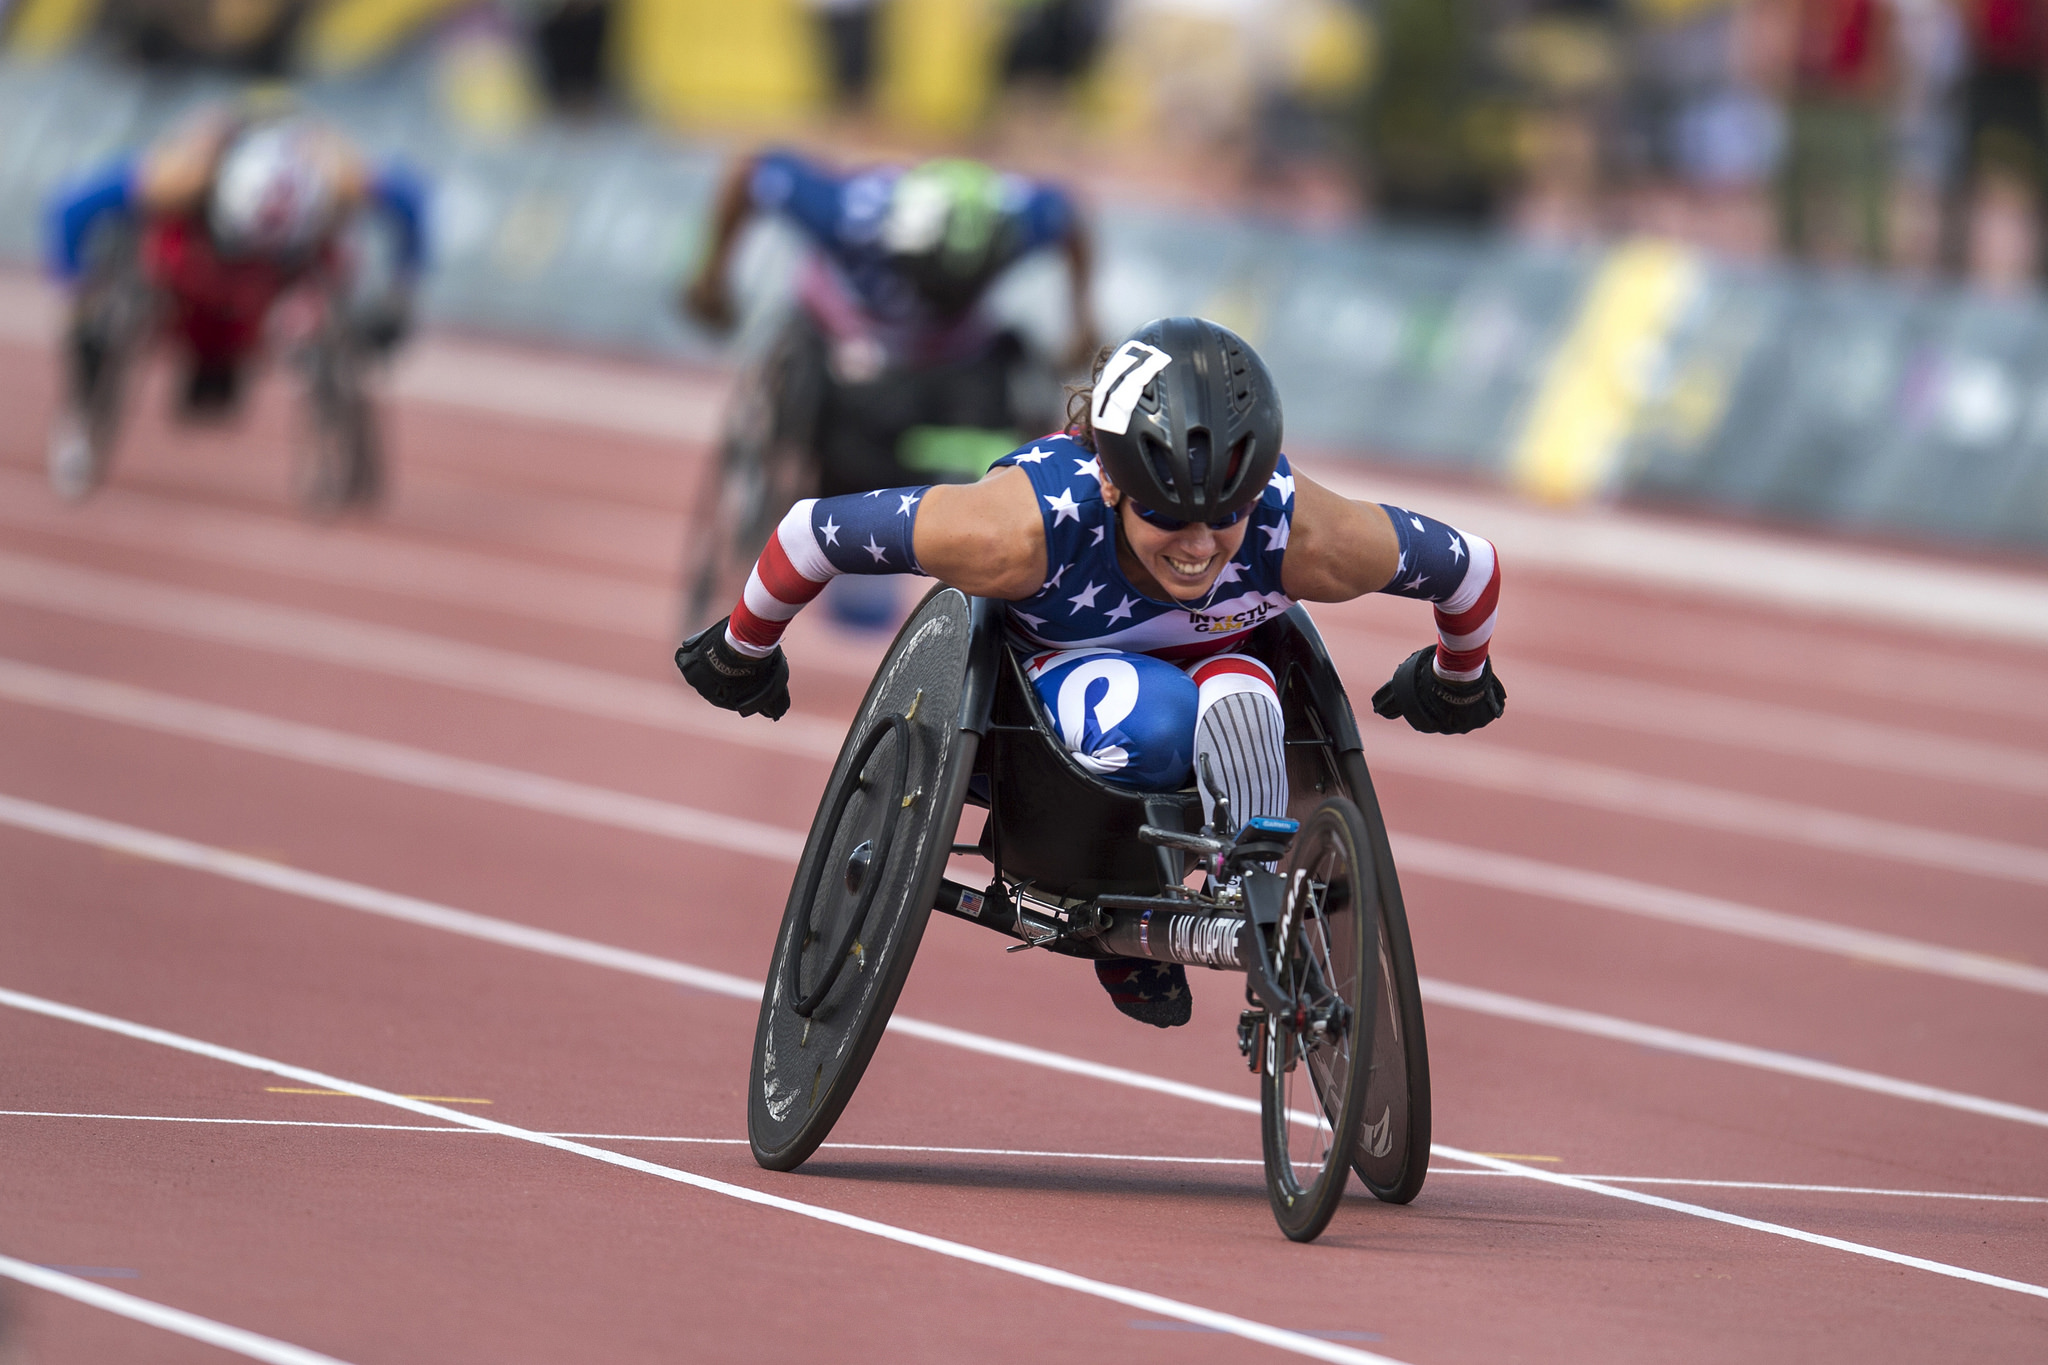 U.S. Army veteran Kelly Elmlinger races a wheelchair during the 2017 Invictus Games in Toronto, Canada, on Sept. 24, 2017. The Invictus Games, established by Prince Harry in 2014, brings together wounded and injured veterans from 17 nations for 12 adaptive sporting events, including track and field, wheelchair basketball, wheelchair rugby, swimming, sitting volleyball, and, new to the 2017 games, golf. (EJ Hersom/DoD)